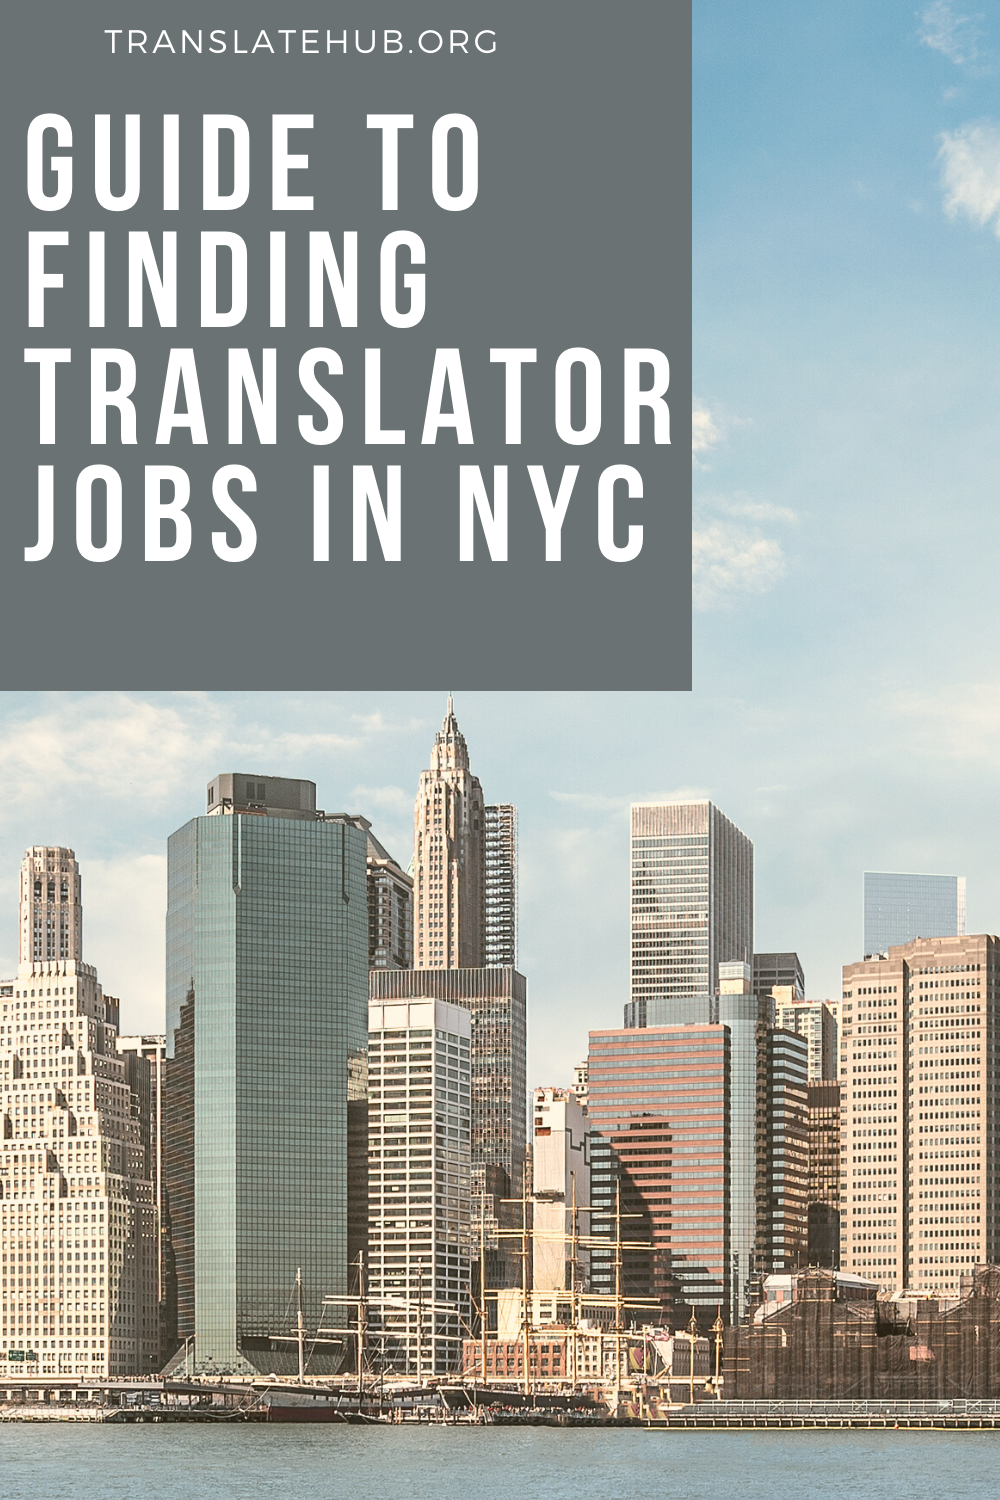 Guide To Finding Translator Jobs In Nyc Translator Jobs Nyc Nyc Doe Translation Jobs Wfh Job Translation Freelancing Jobs